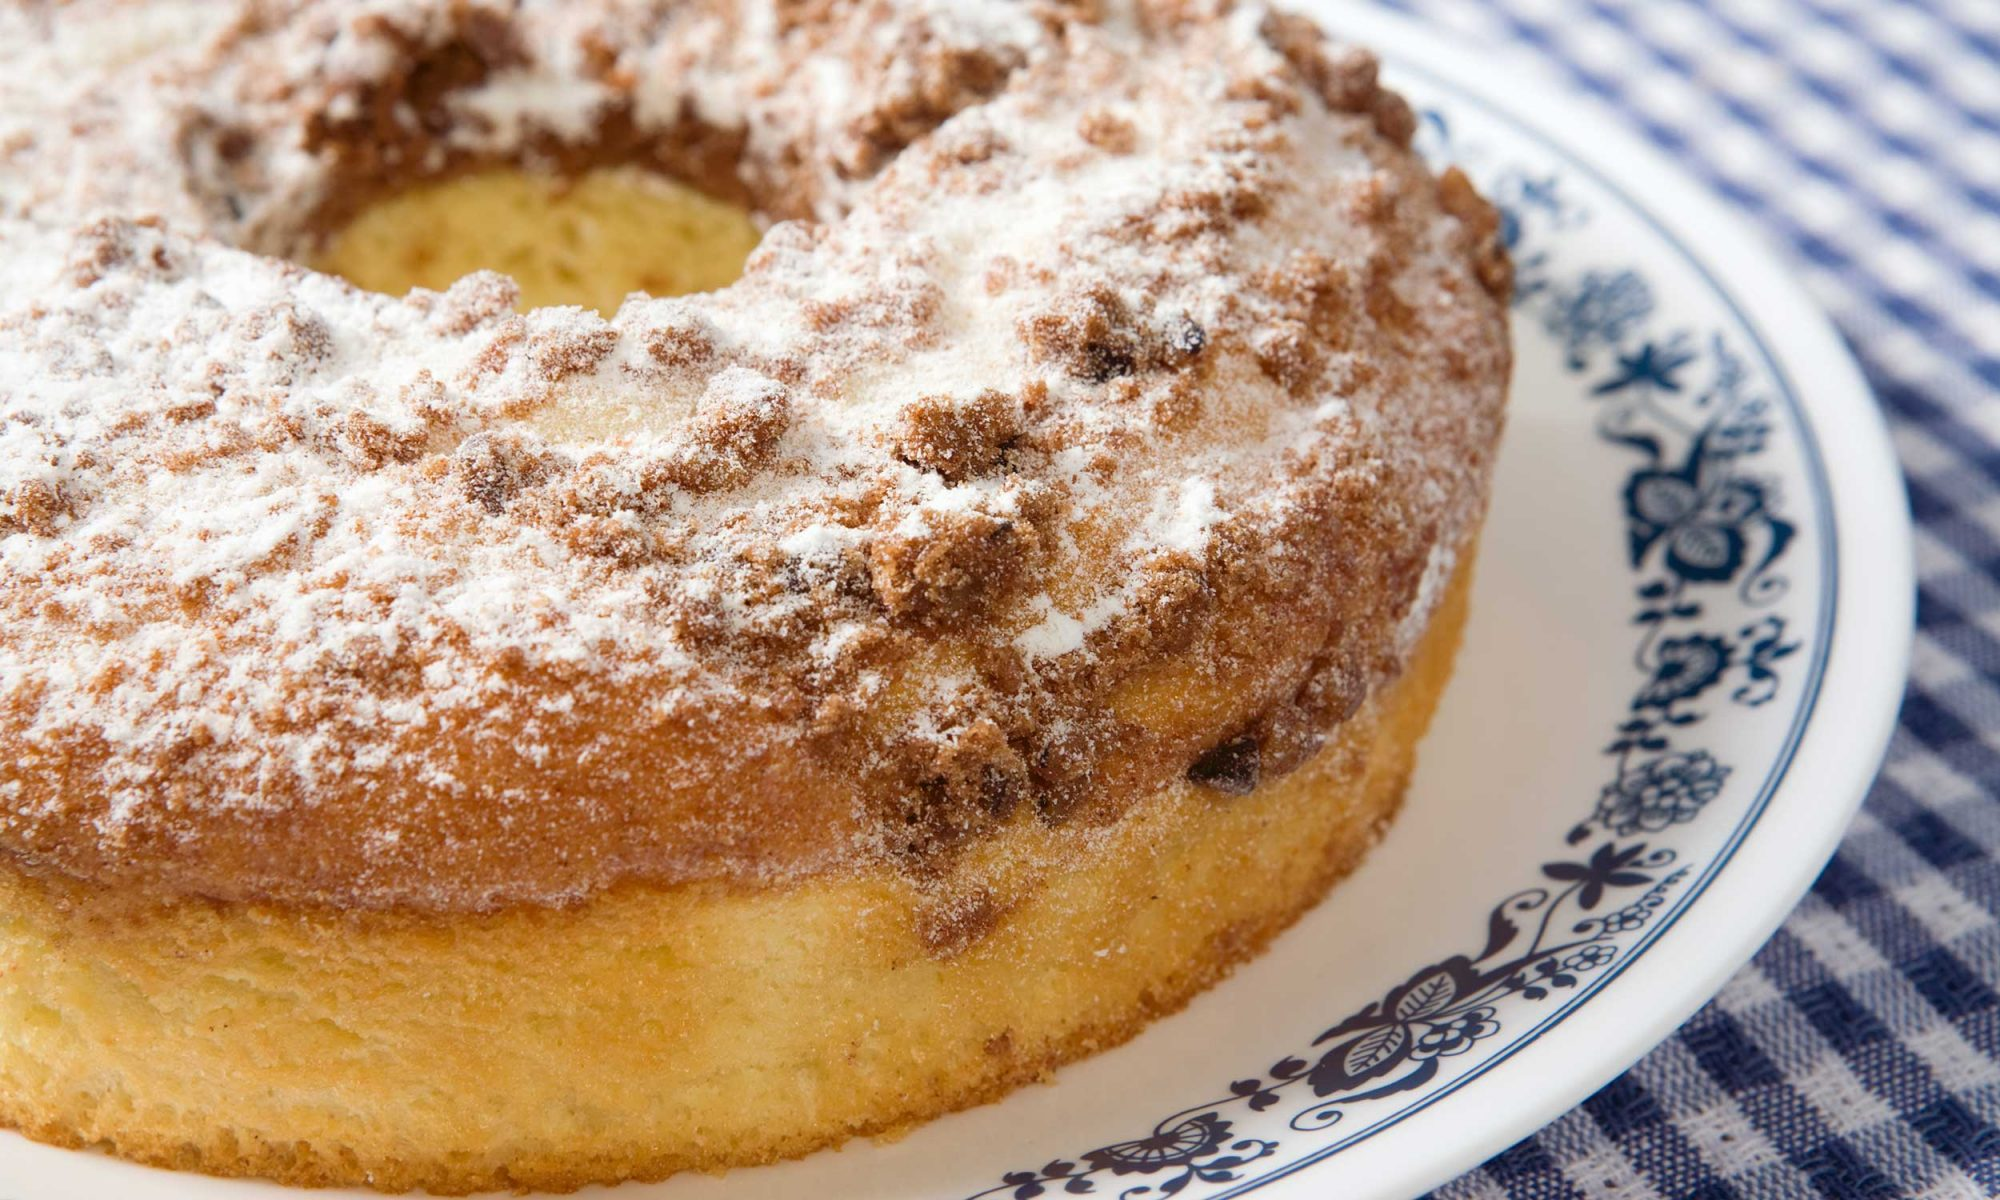 EC: These Coffee Cake Recipes Will Satisfy Any Sweet Tooth